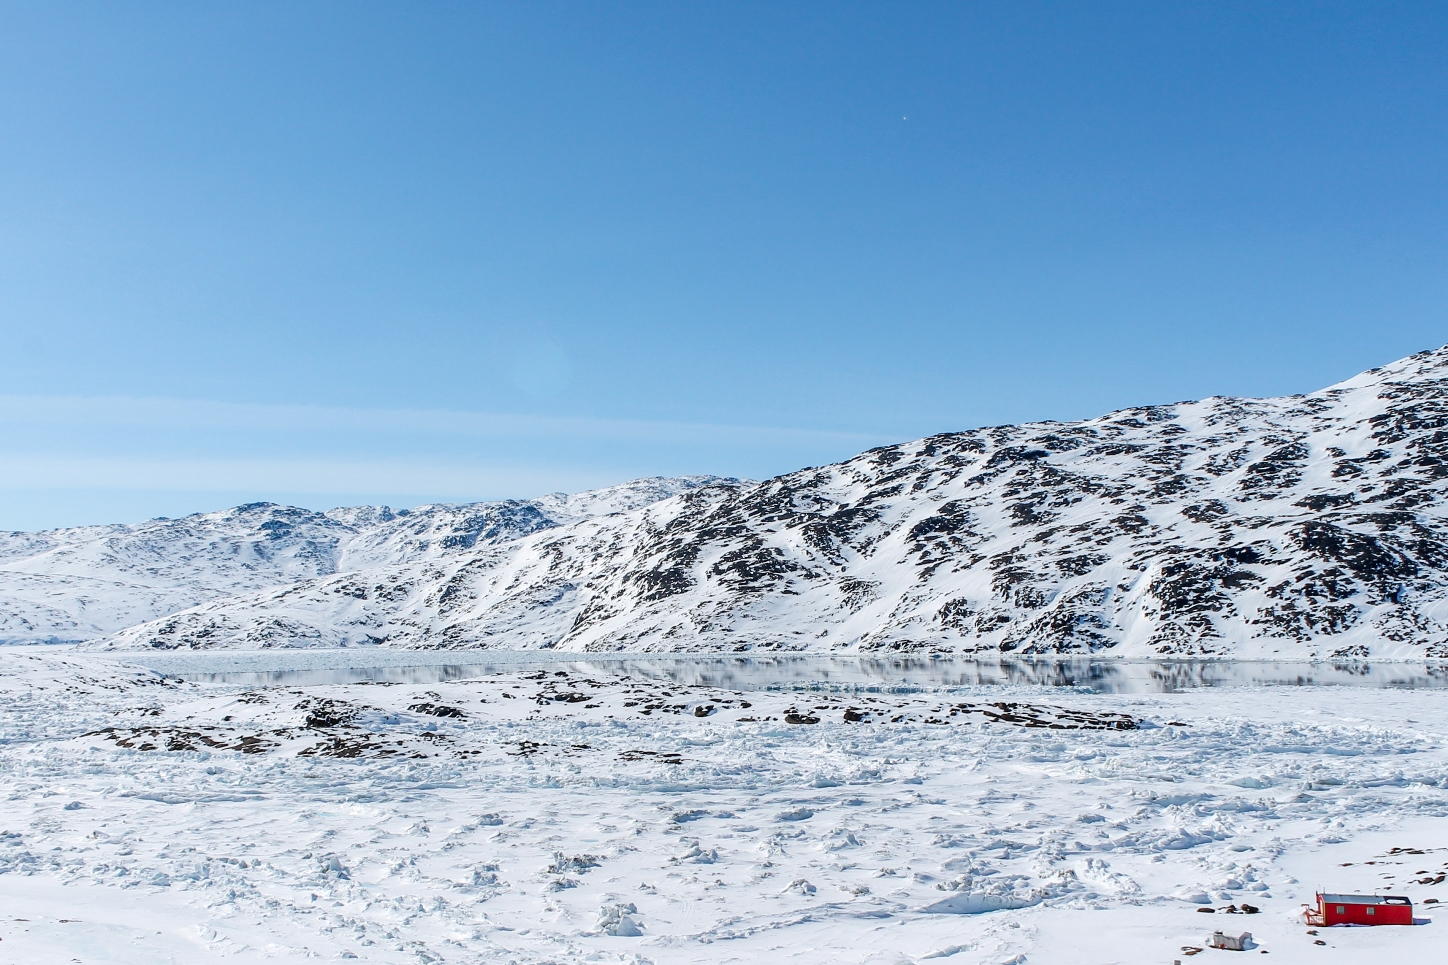 Check out that view! The reflection is a polyna, or area of open water surrounded by sea ice.